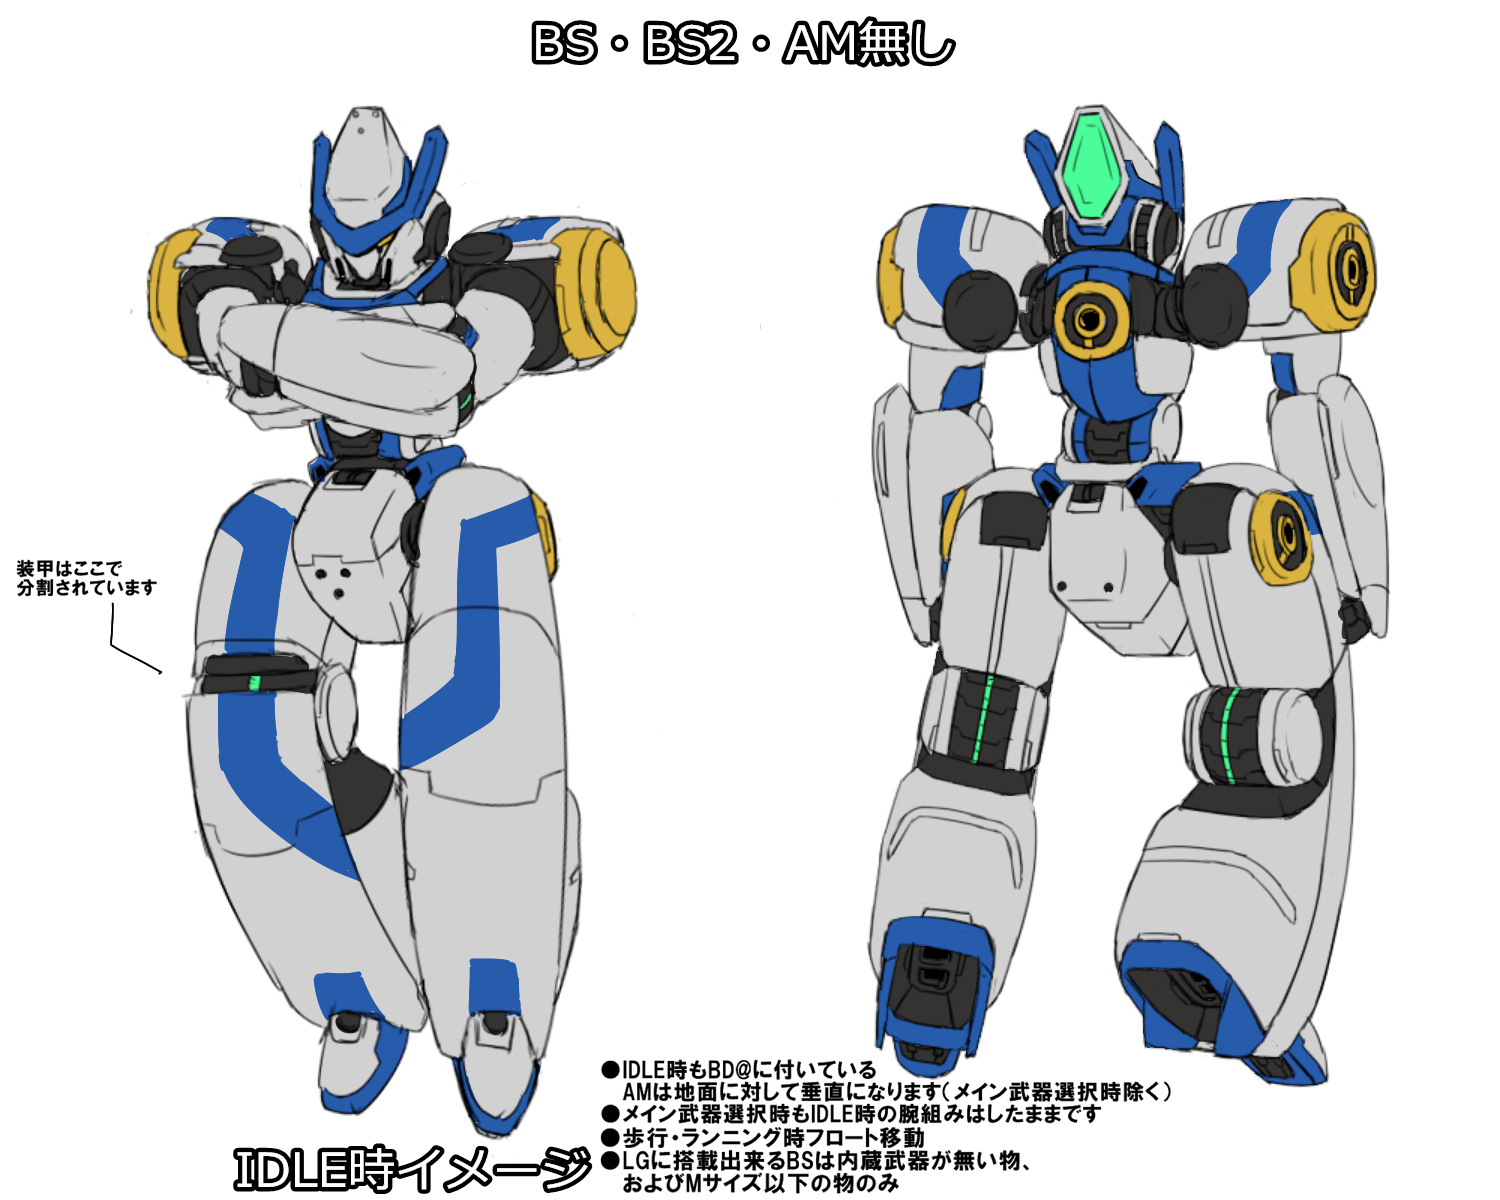 5th cosmic robo design contest results Img.php?filename=tc_1098665_2_1368351120